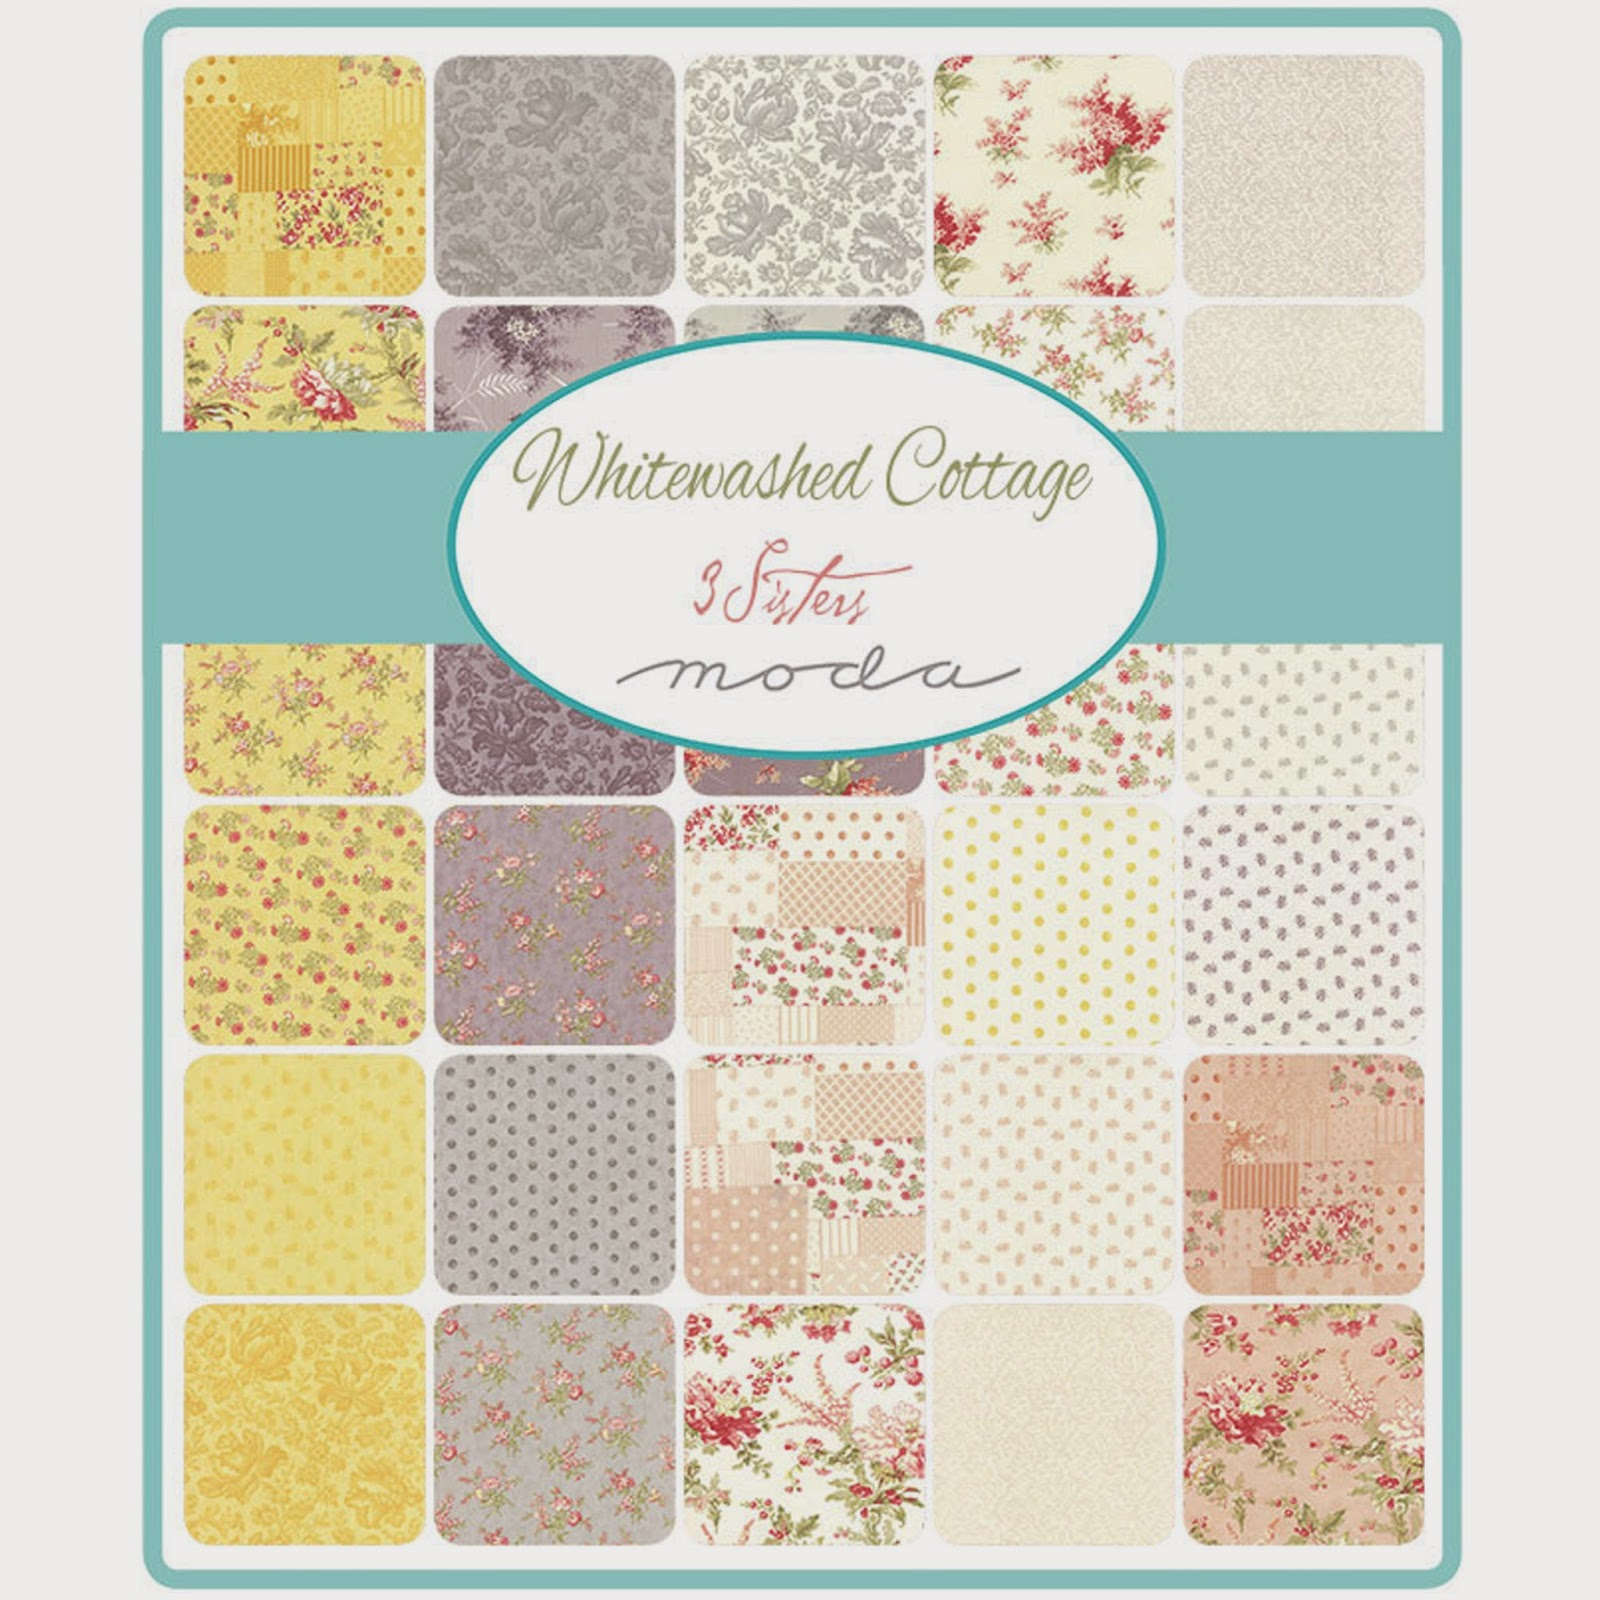 Moda WHITEWASHED COTTAGE Fabric by 3 Sisters for Moda Fabrics